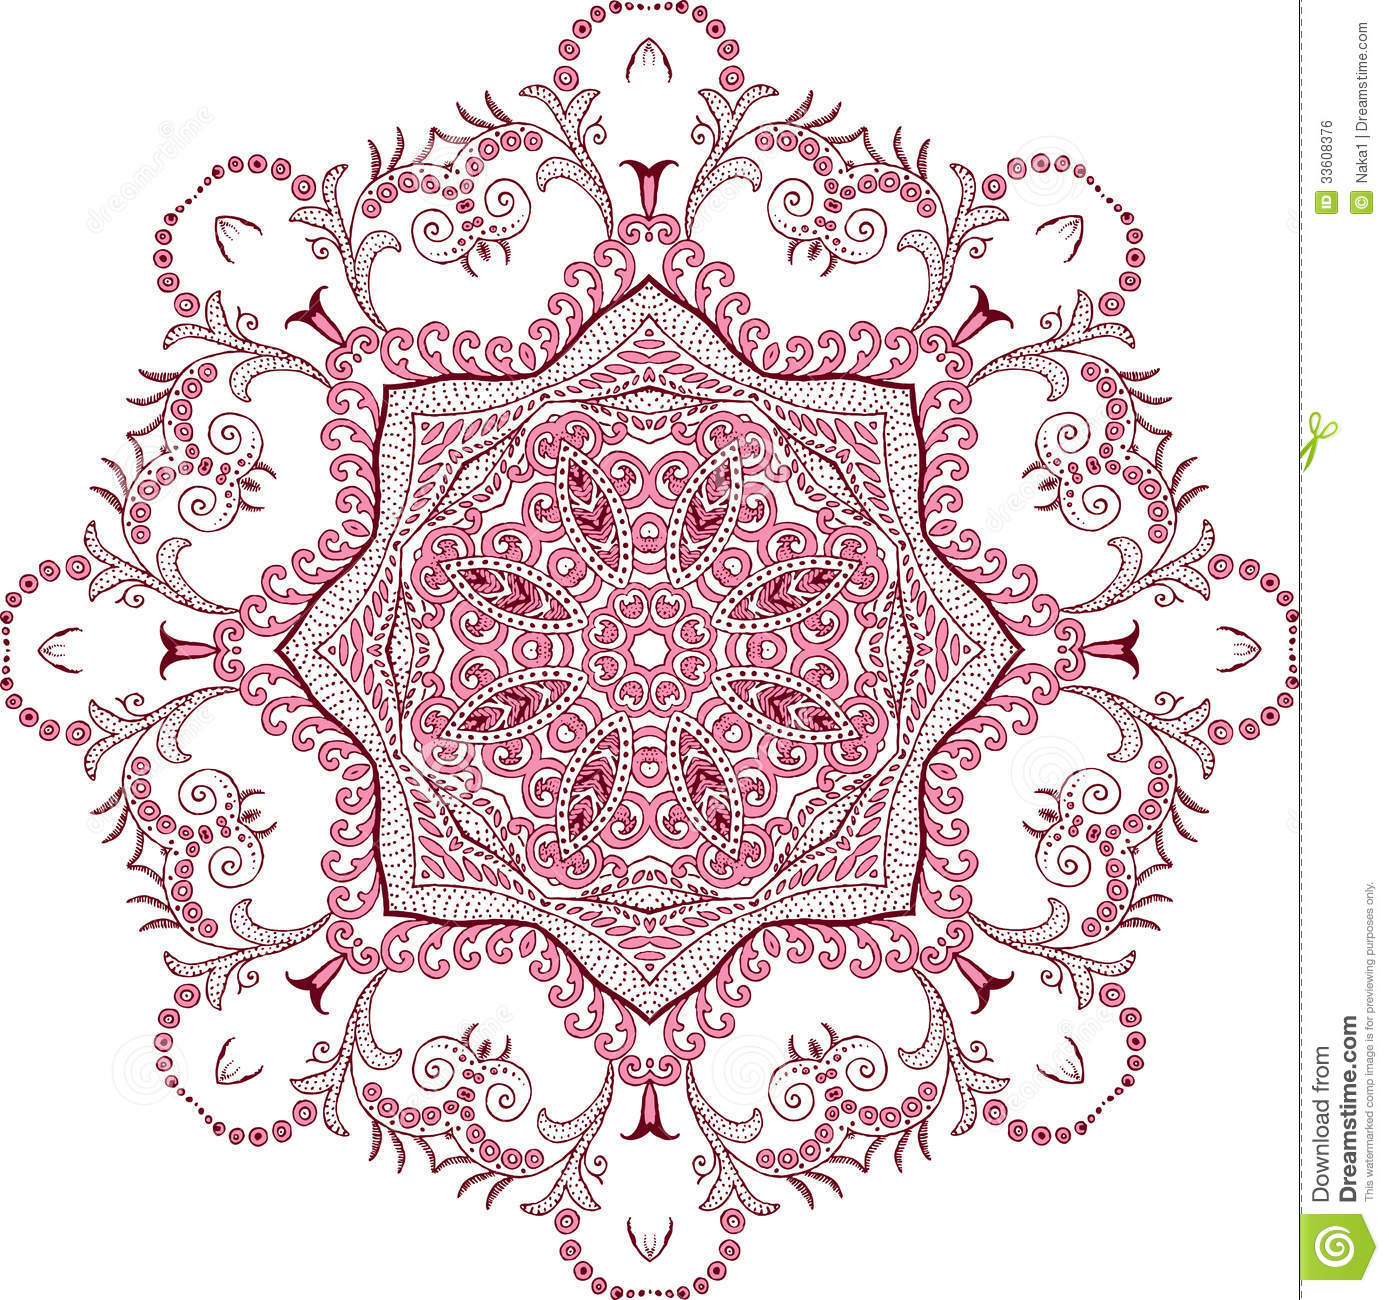 Mandala Henna Design Fashion Illustration 33608376 Megapixl